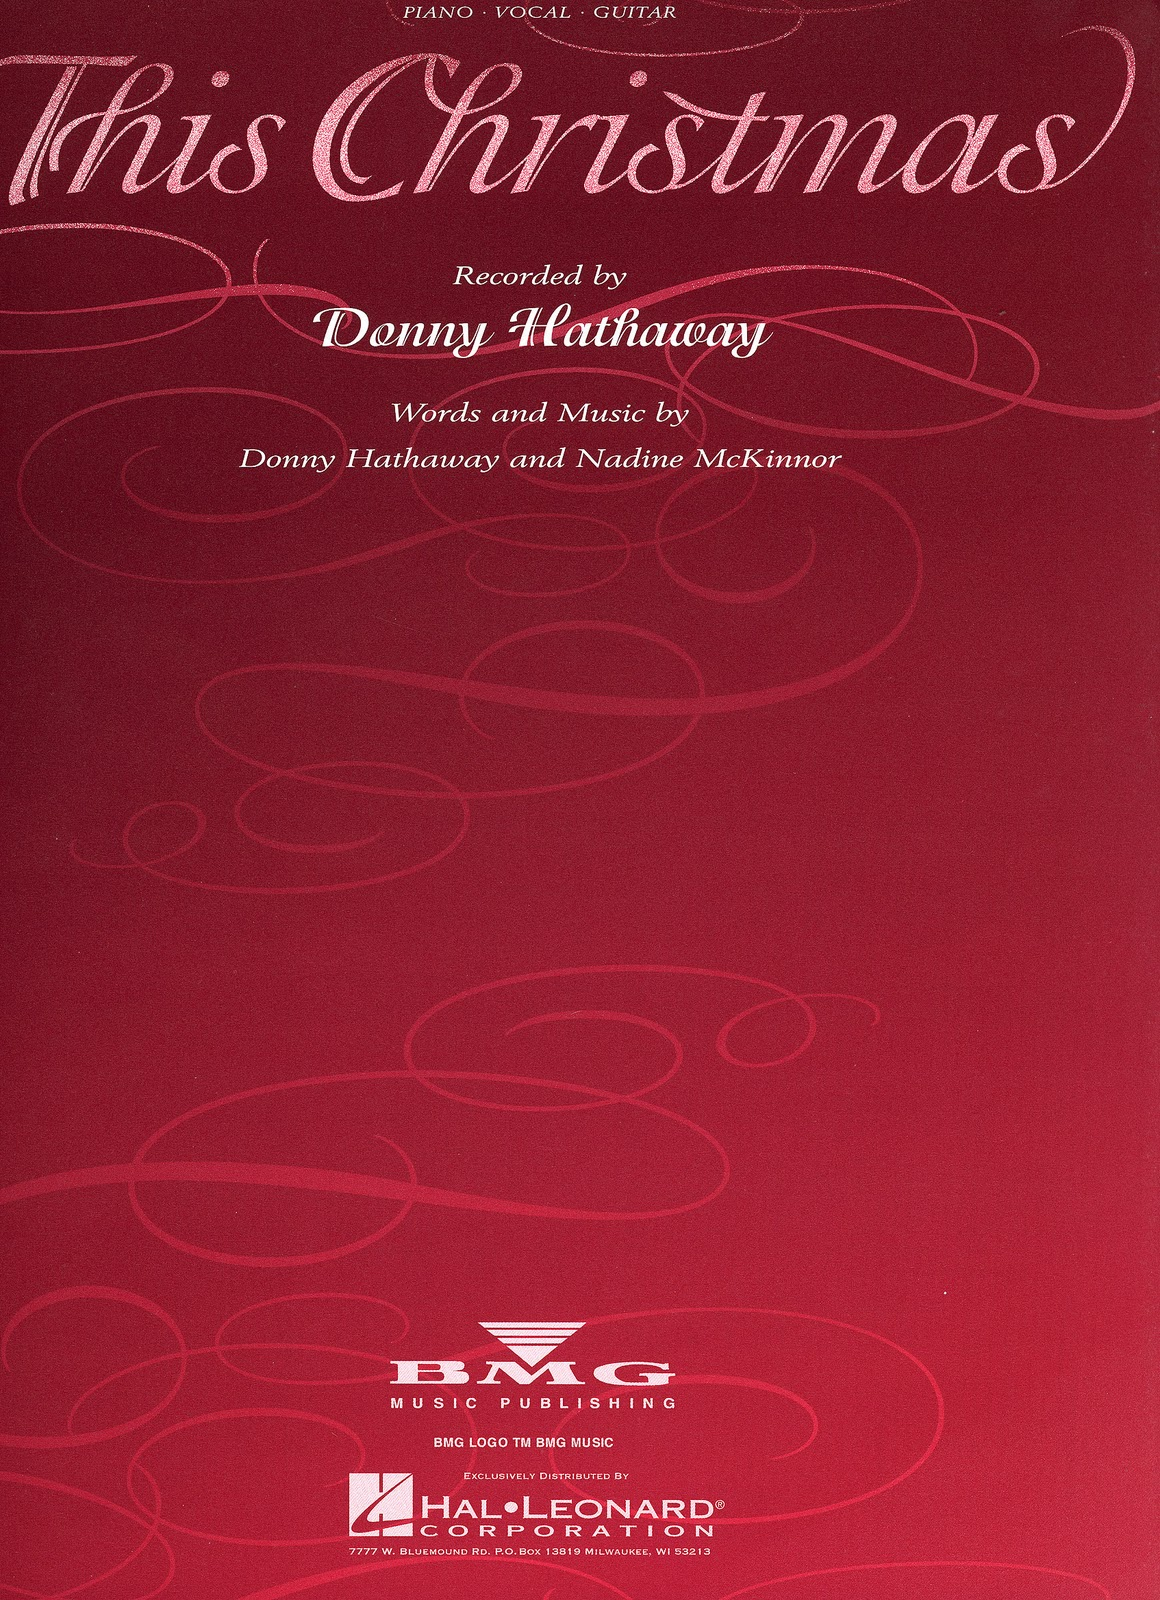 Donny Hathaway This Christmas.Donny Hathaway This Christmas Music Sheet